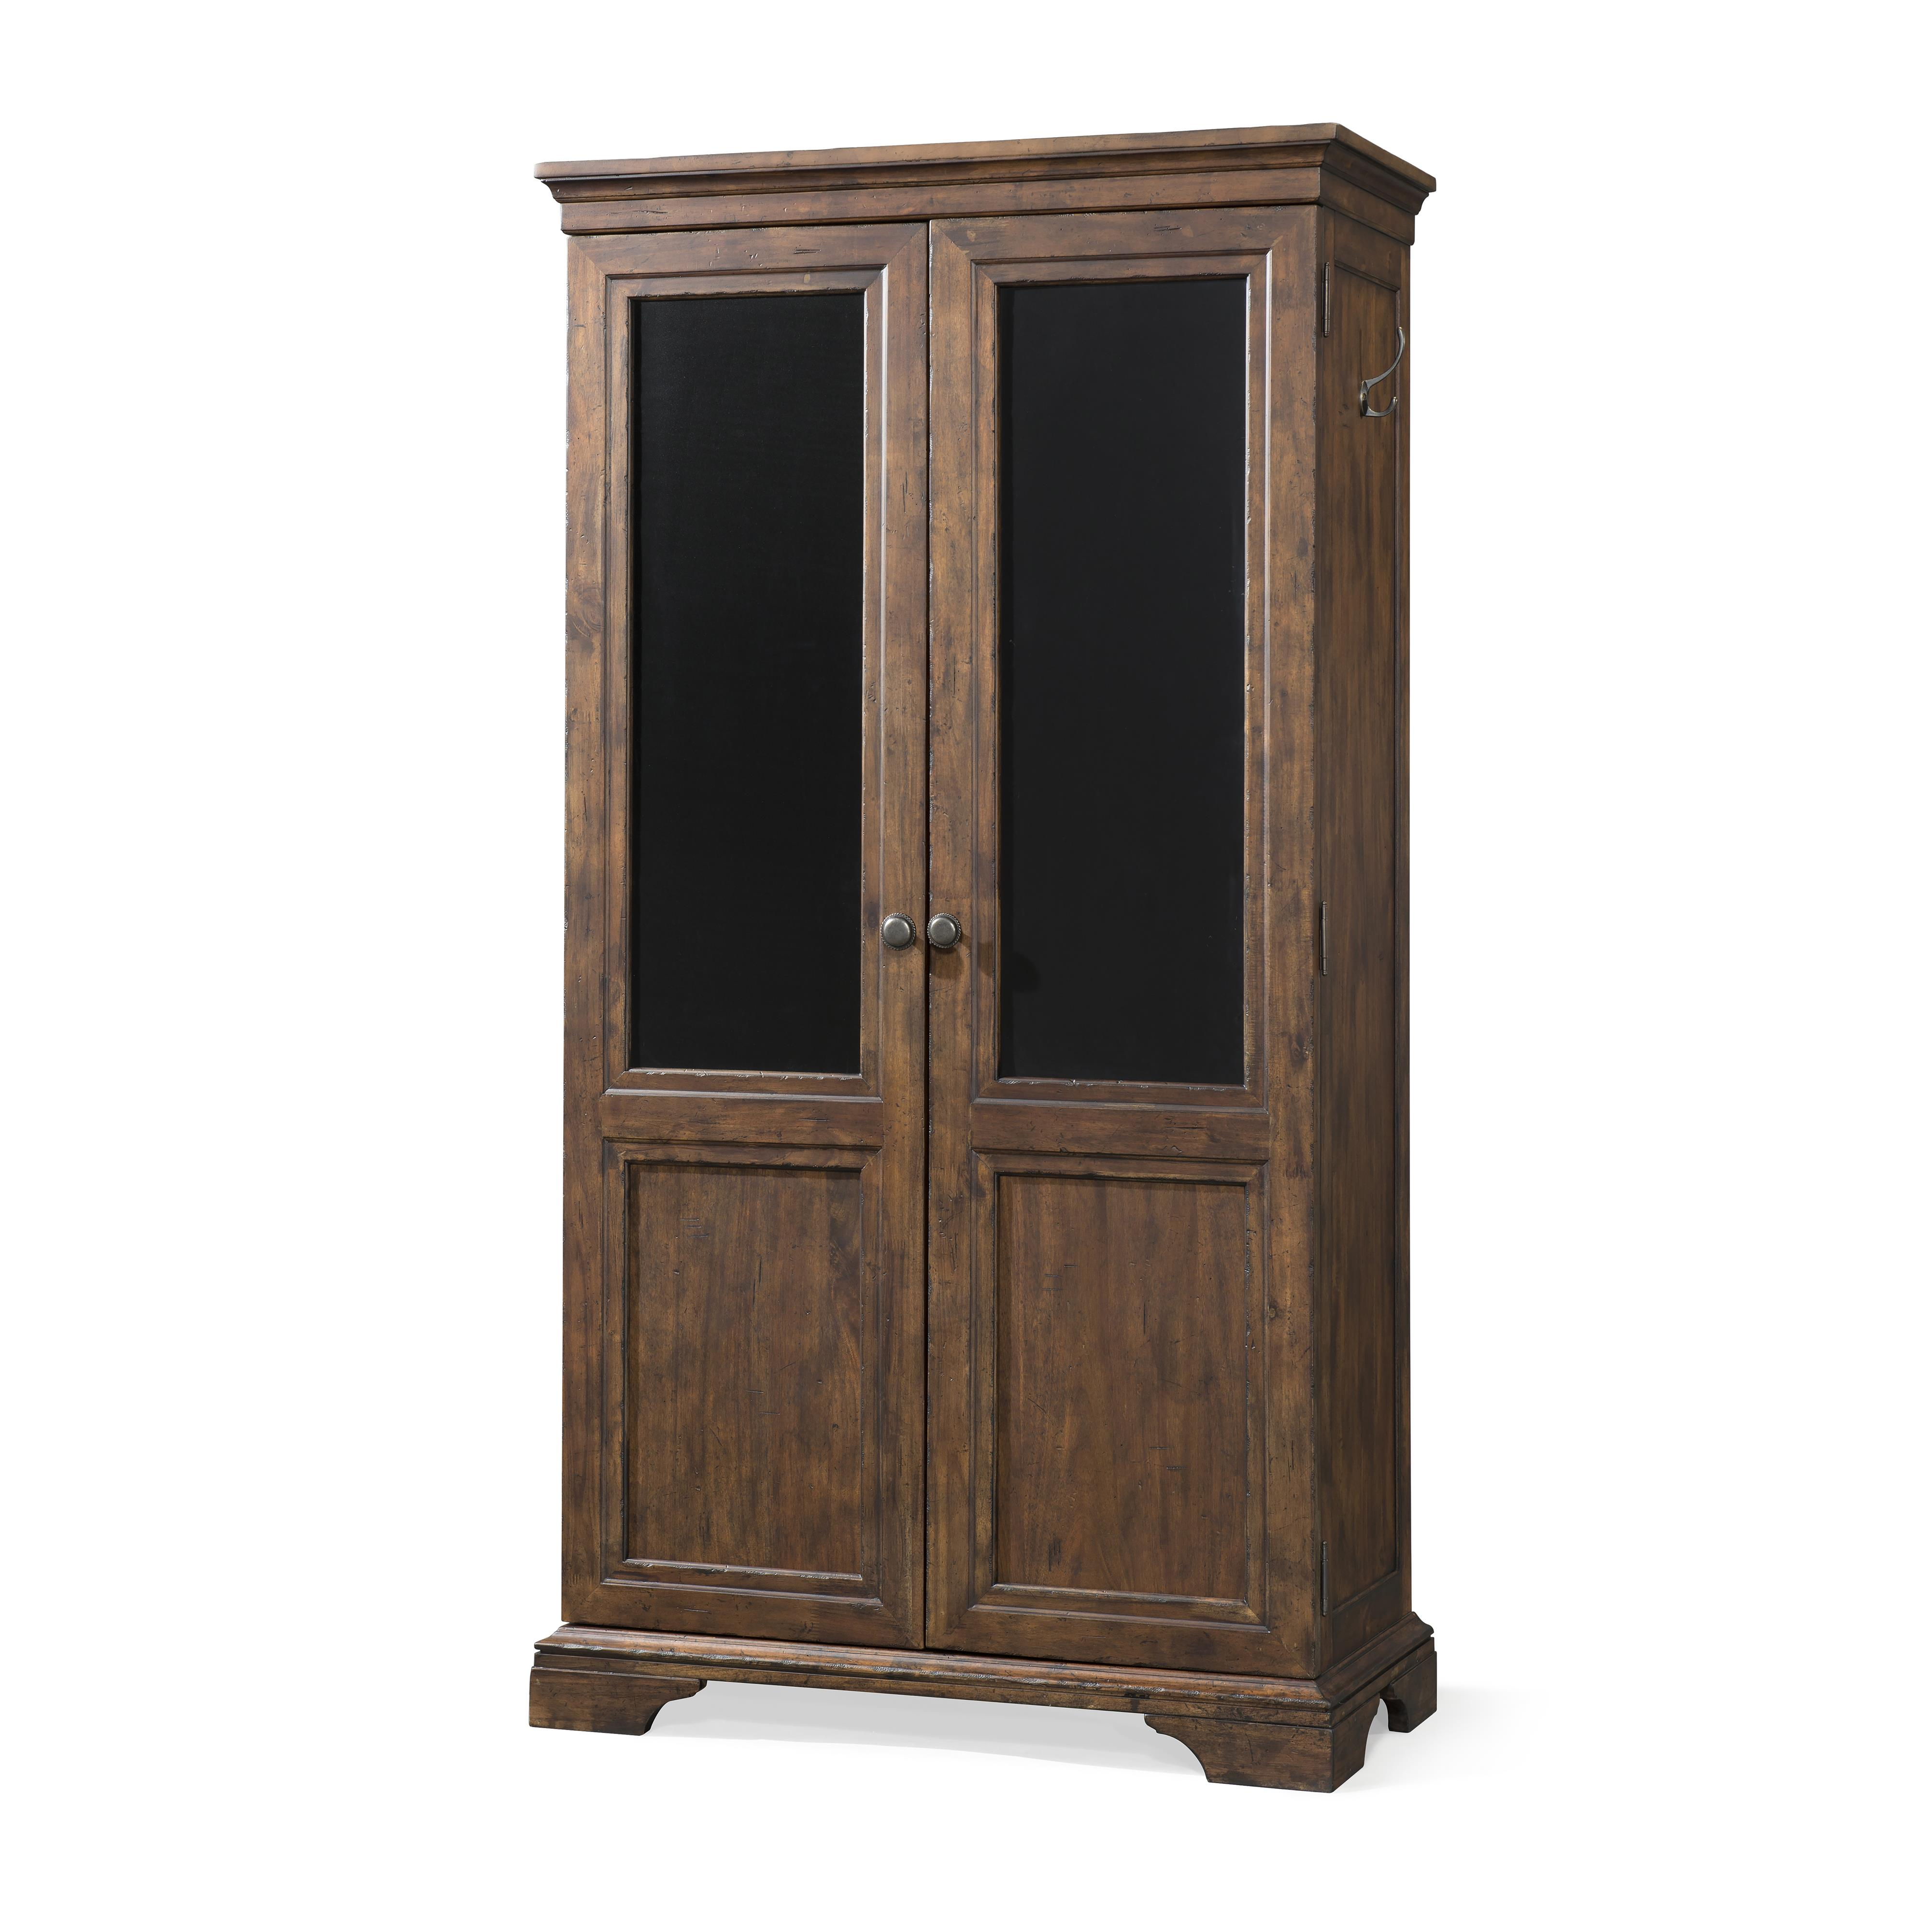 Trisha Yearwood Home Walk Away Joe Storage Cabinet by Trisha Yearwood Home Collection by Klaussner at Rotmans